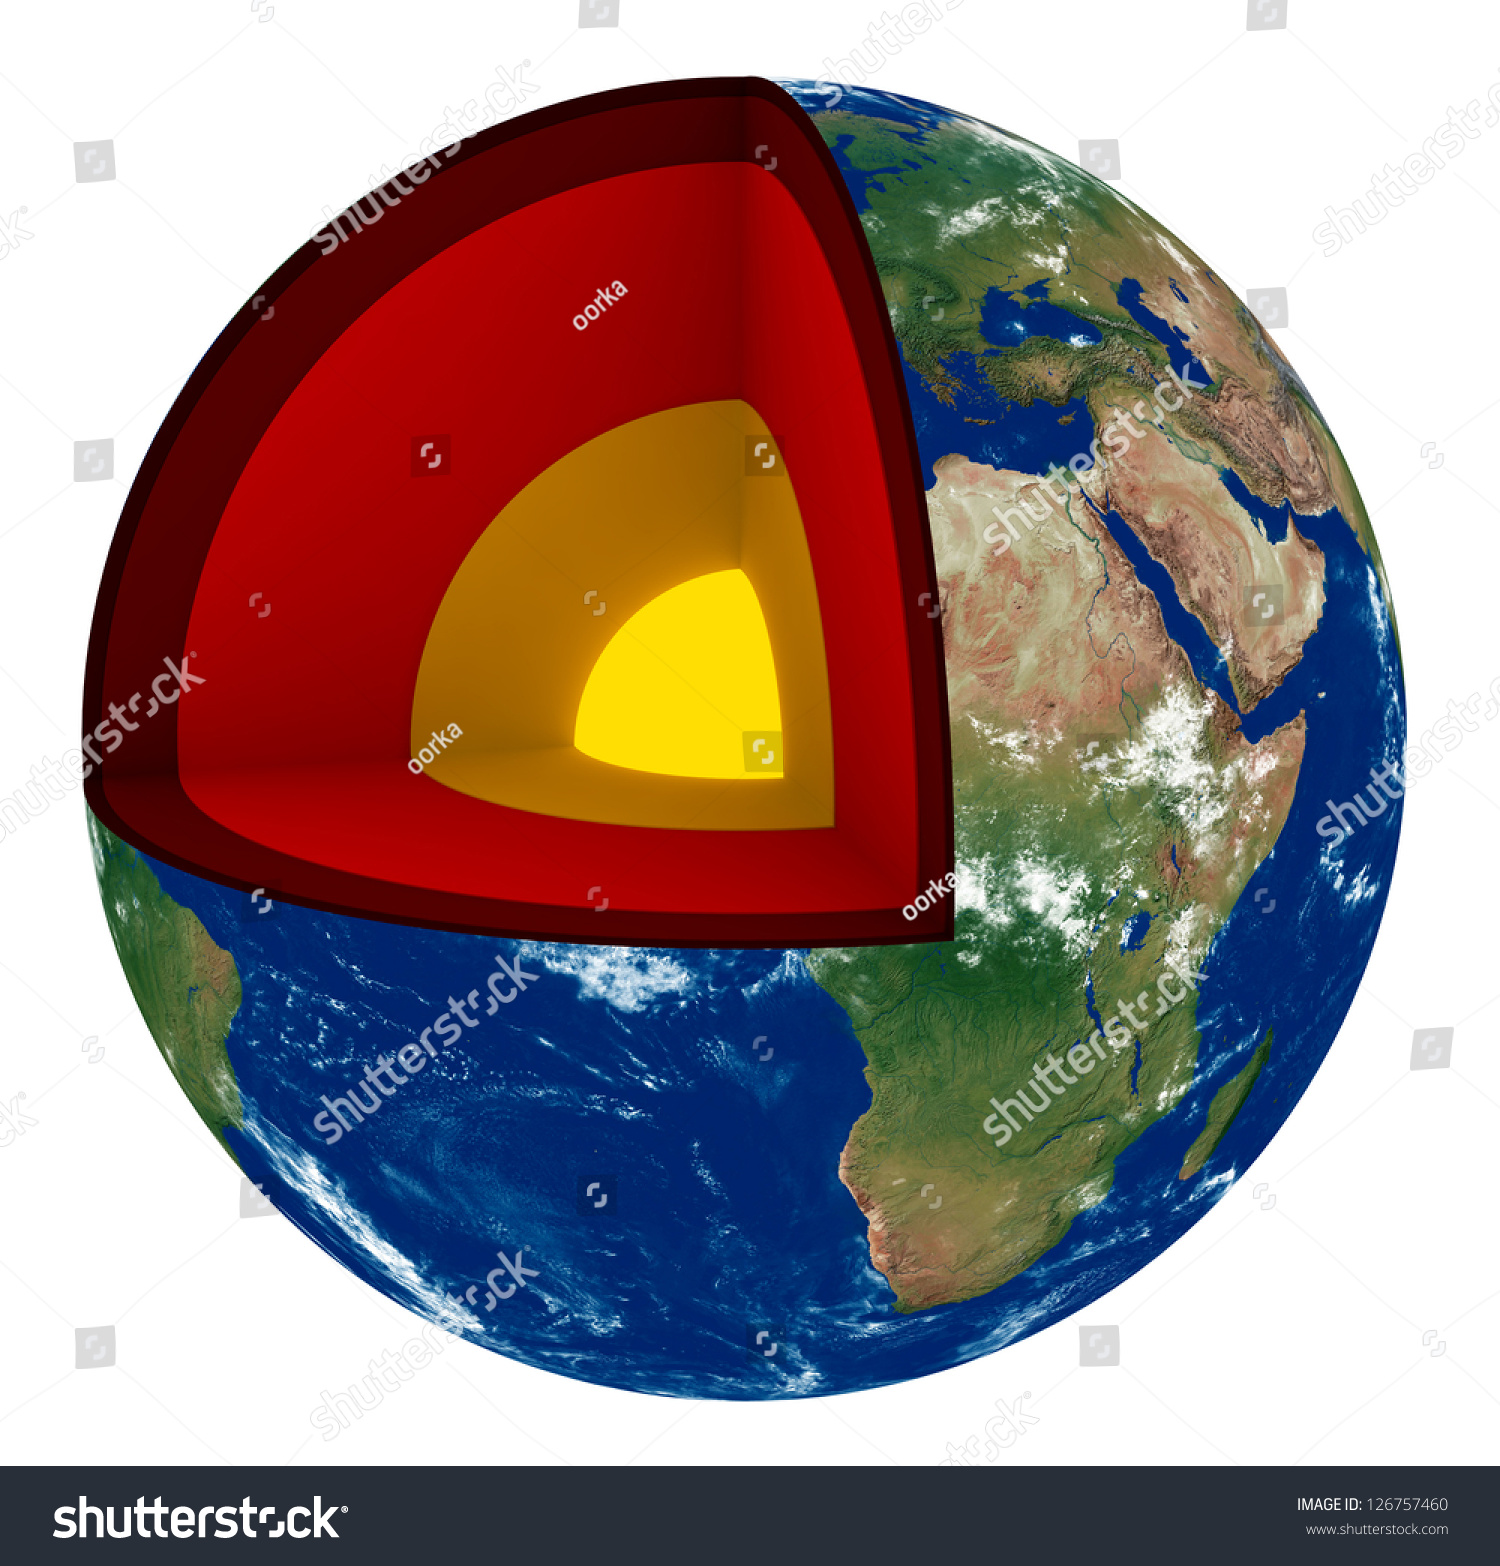 3d Render Of Earth Cross Section Showing Its Internal